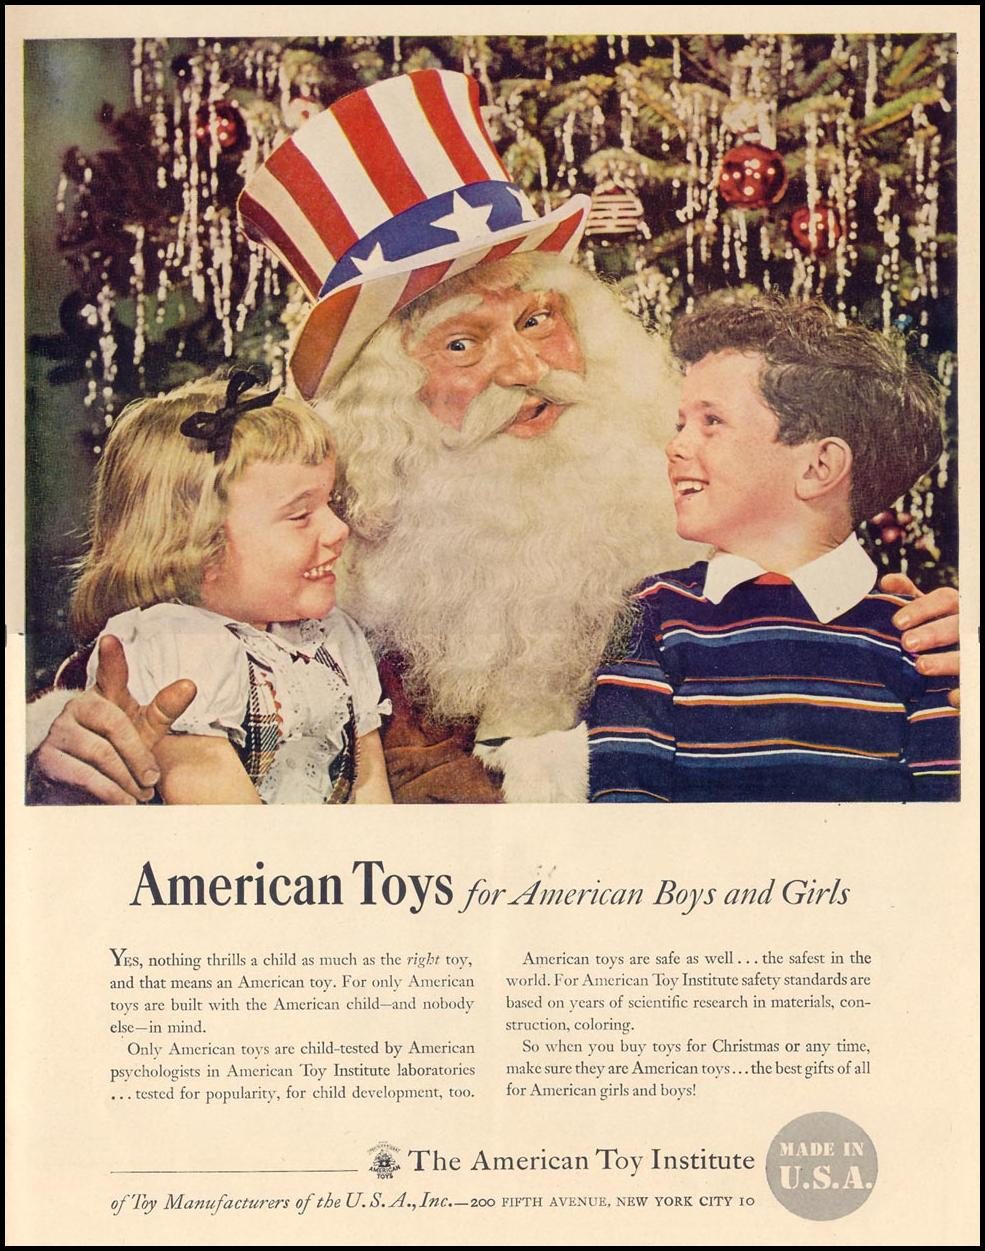 AMERICAN-MADE TOYS